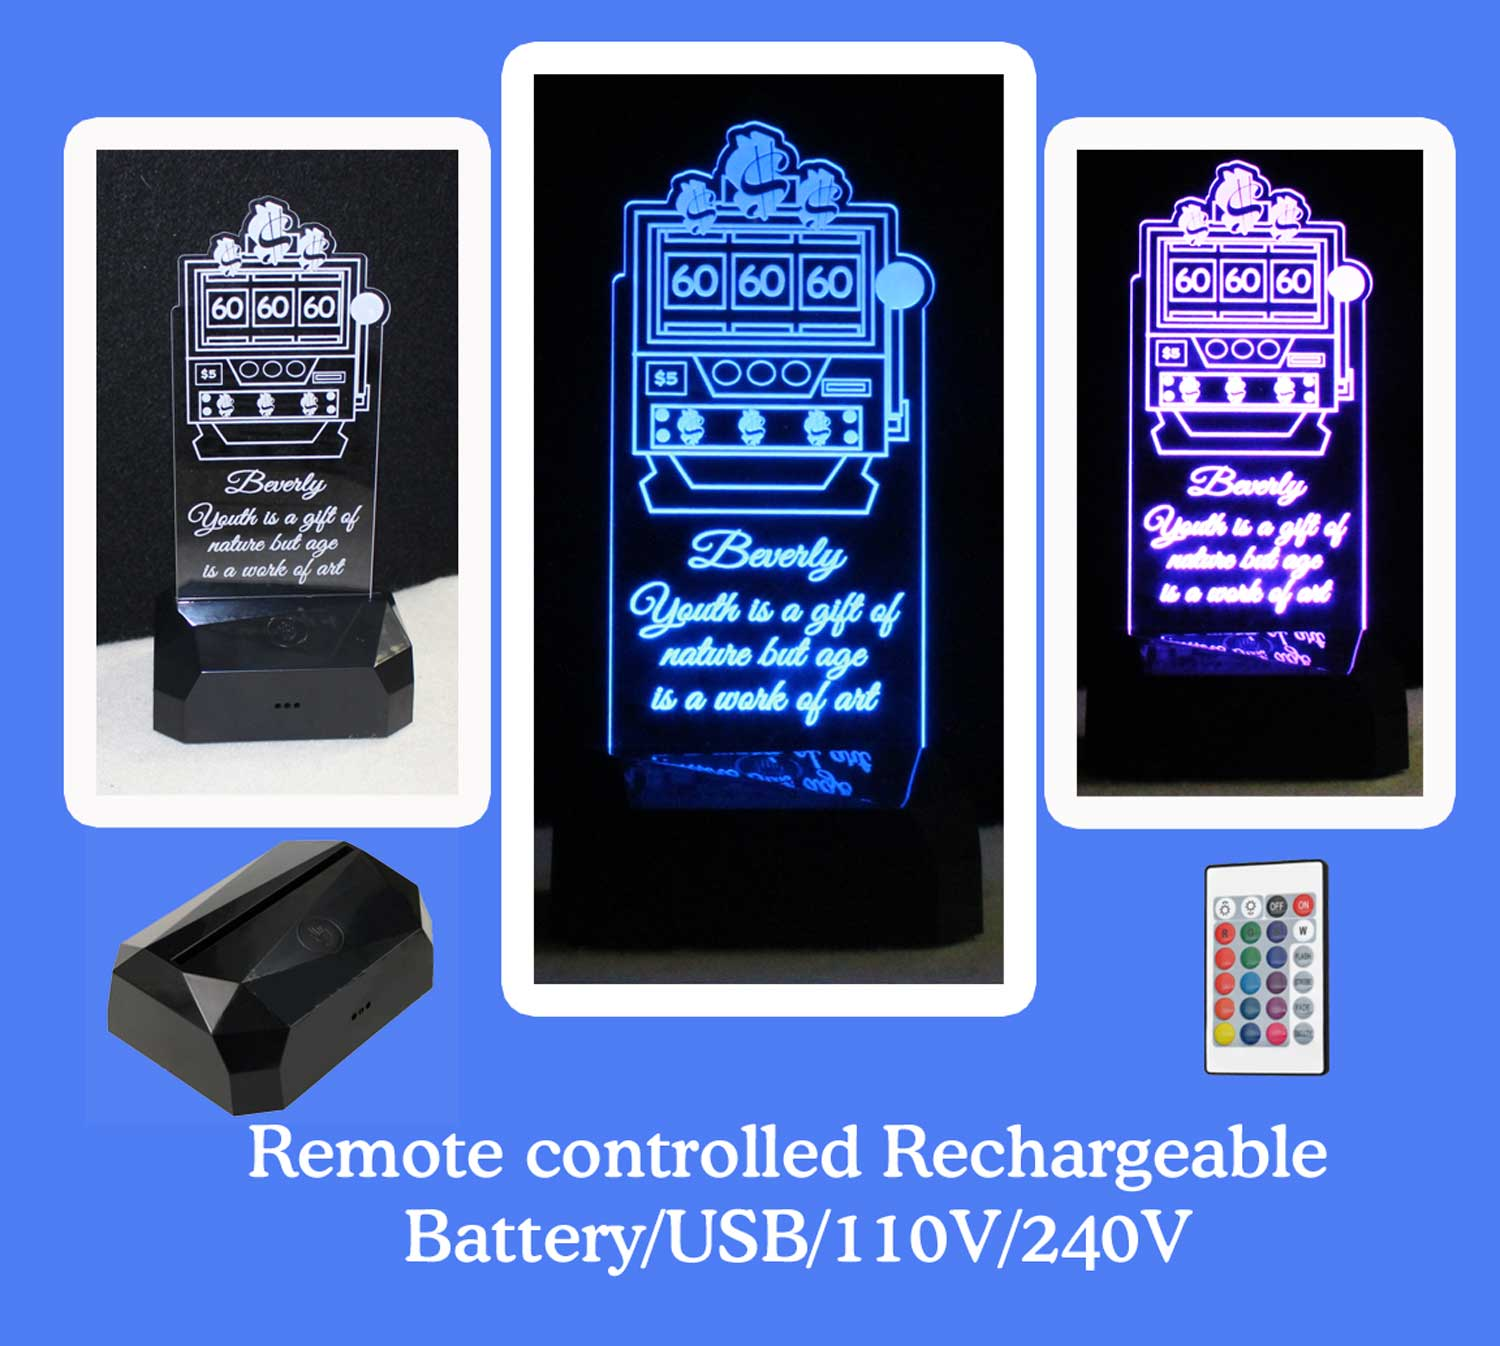 Slot Machine Rechargeable Battery USB/110V/240V Personalized night light, Funny 60 year birthday gift